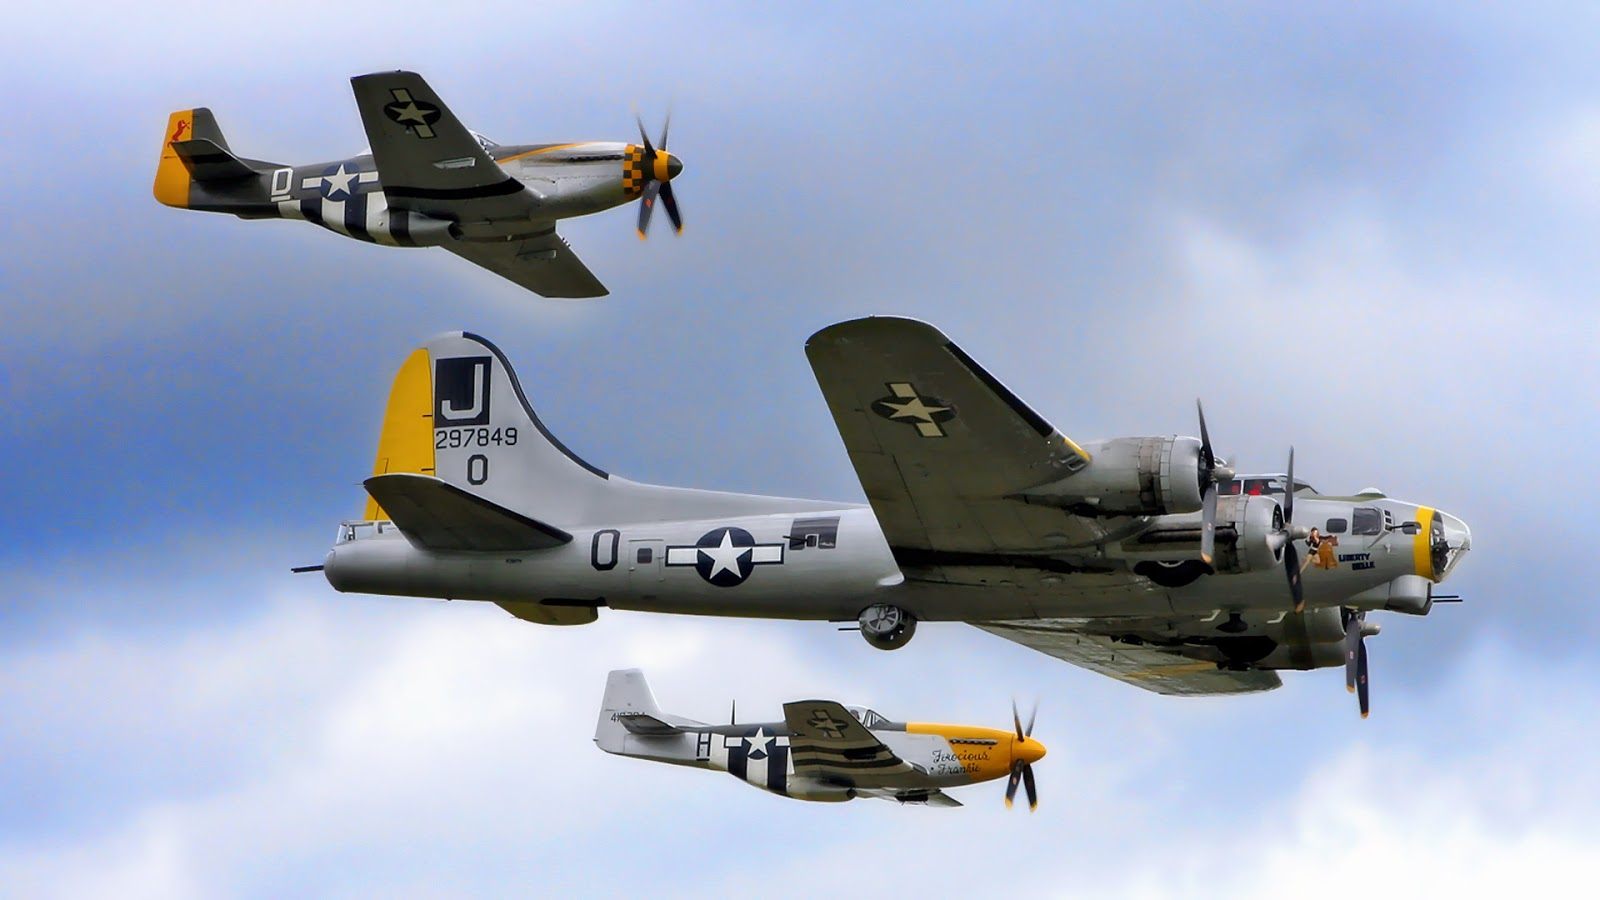 B 17 Flying Fortress Wallpaper http://iappsofts.com/17-flying-fortress.html